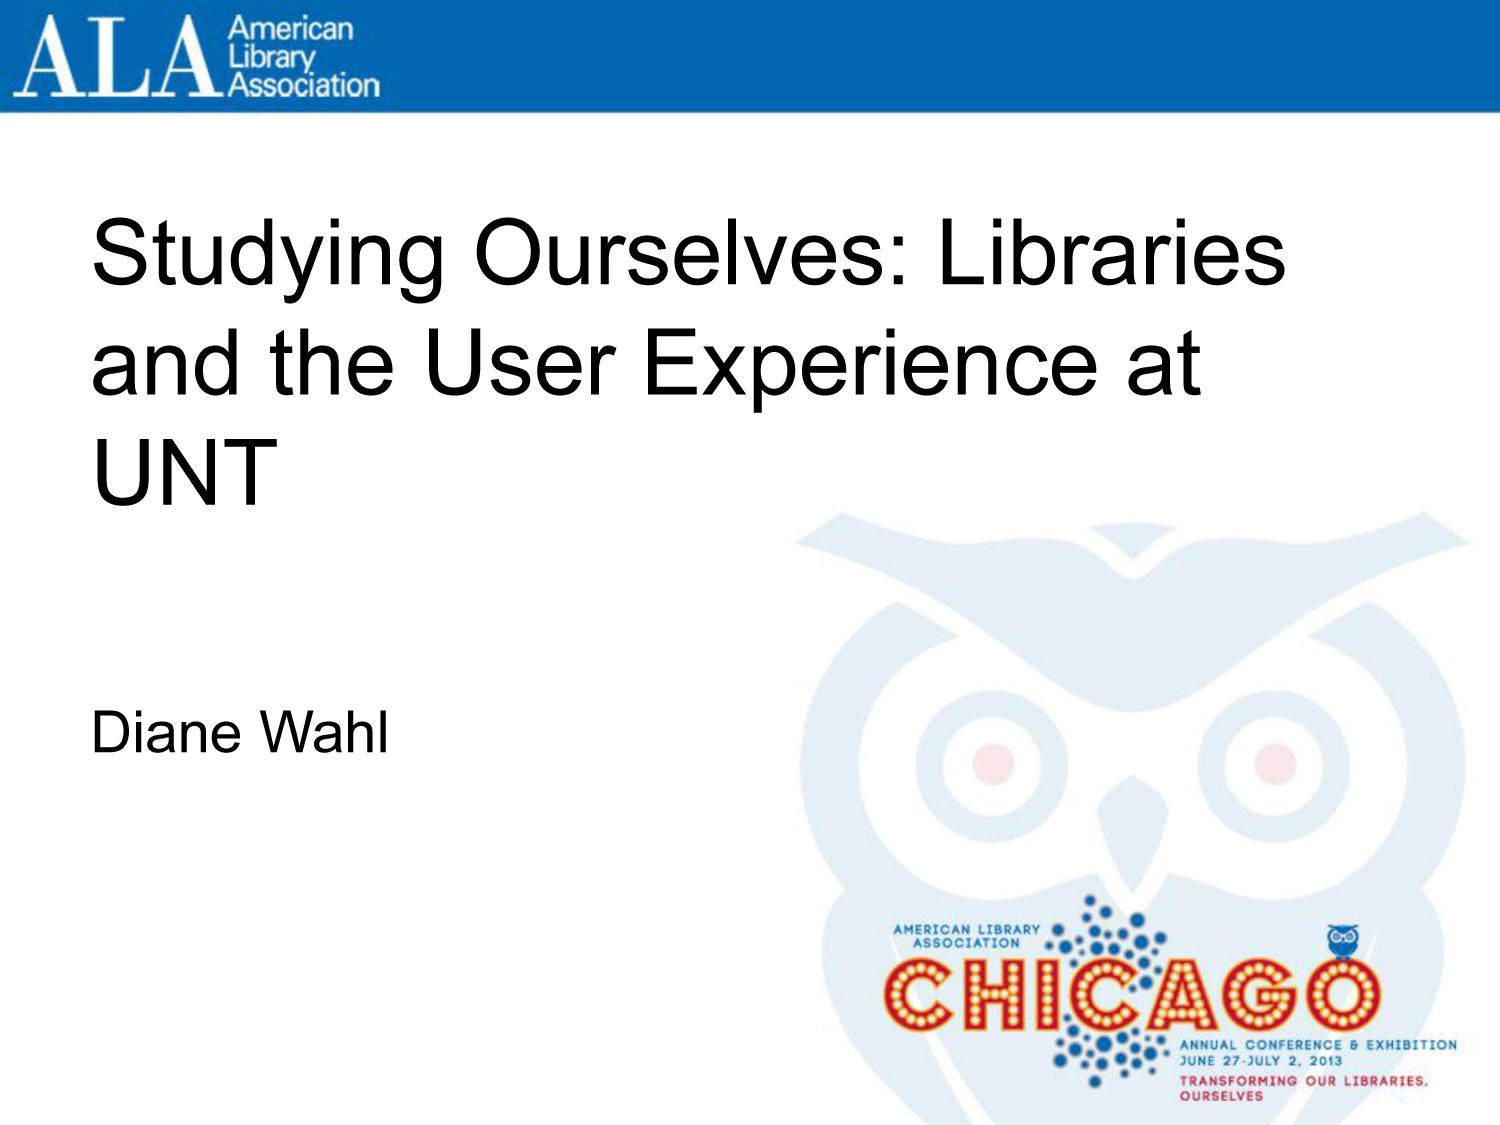 Studying Ourselves: Libraries and the User Experience at UNT                                                                                                      [Sequence #]: 1 of 23